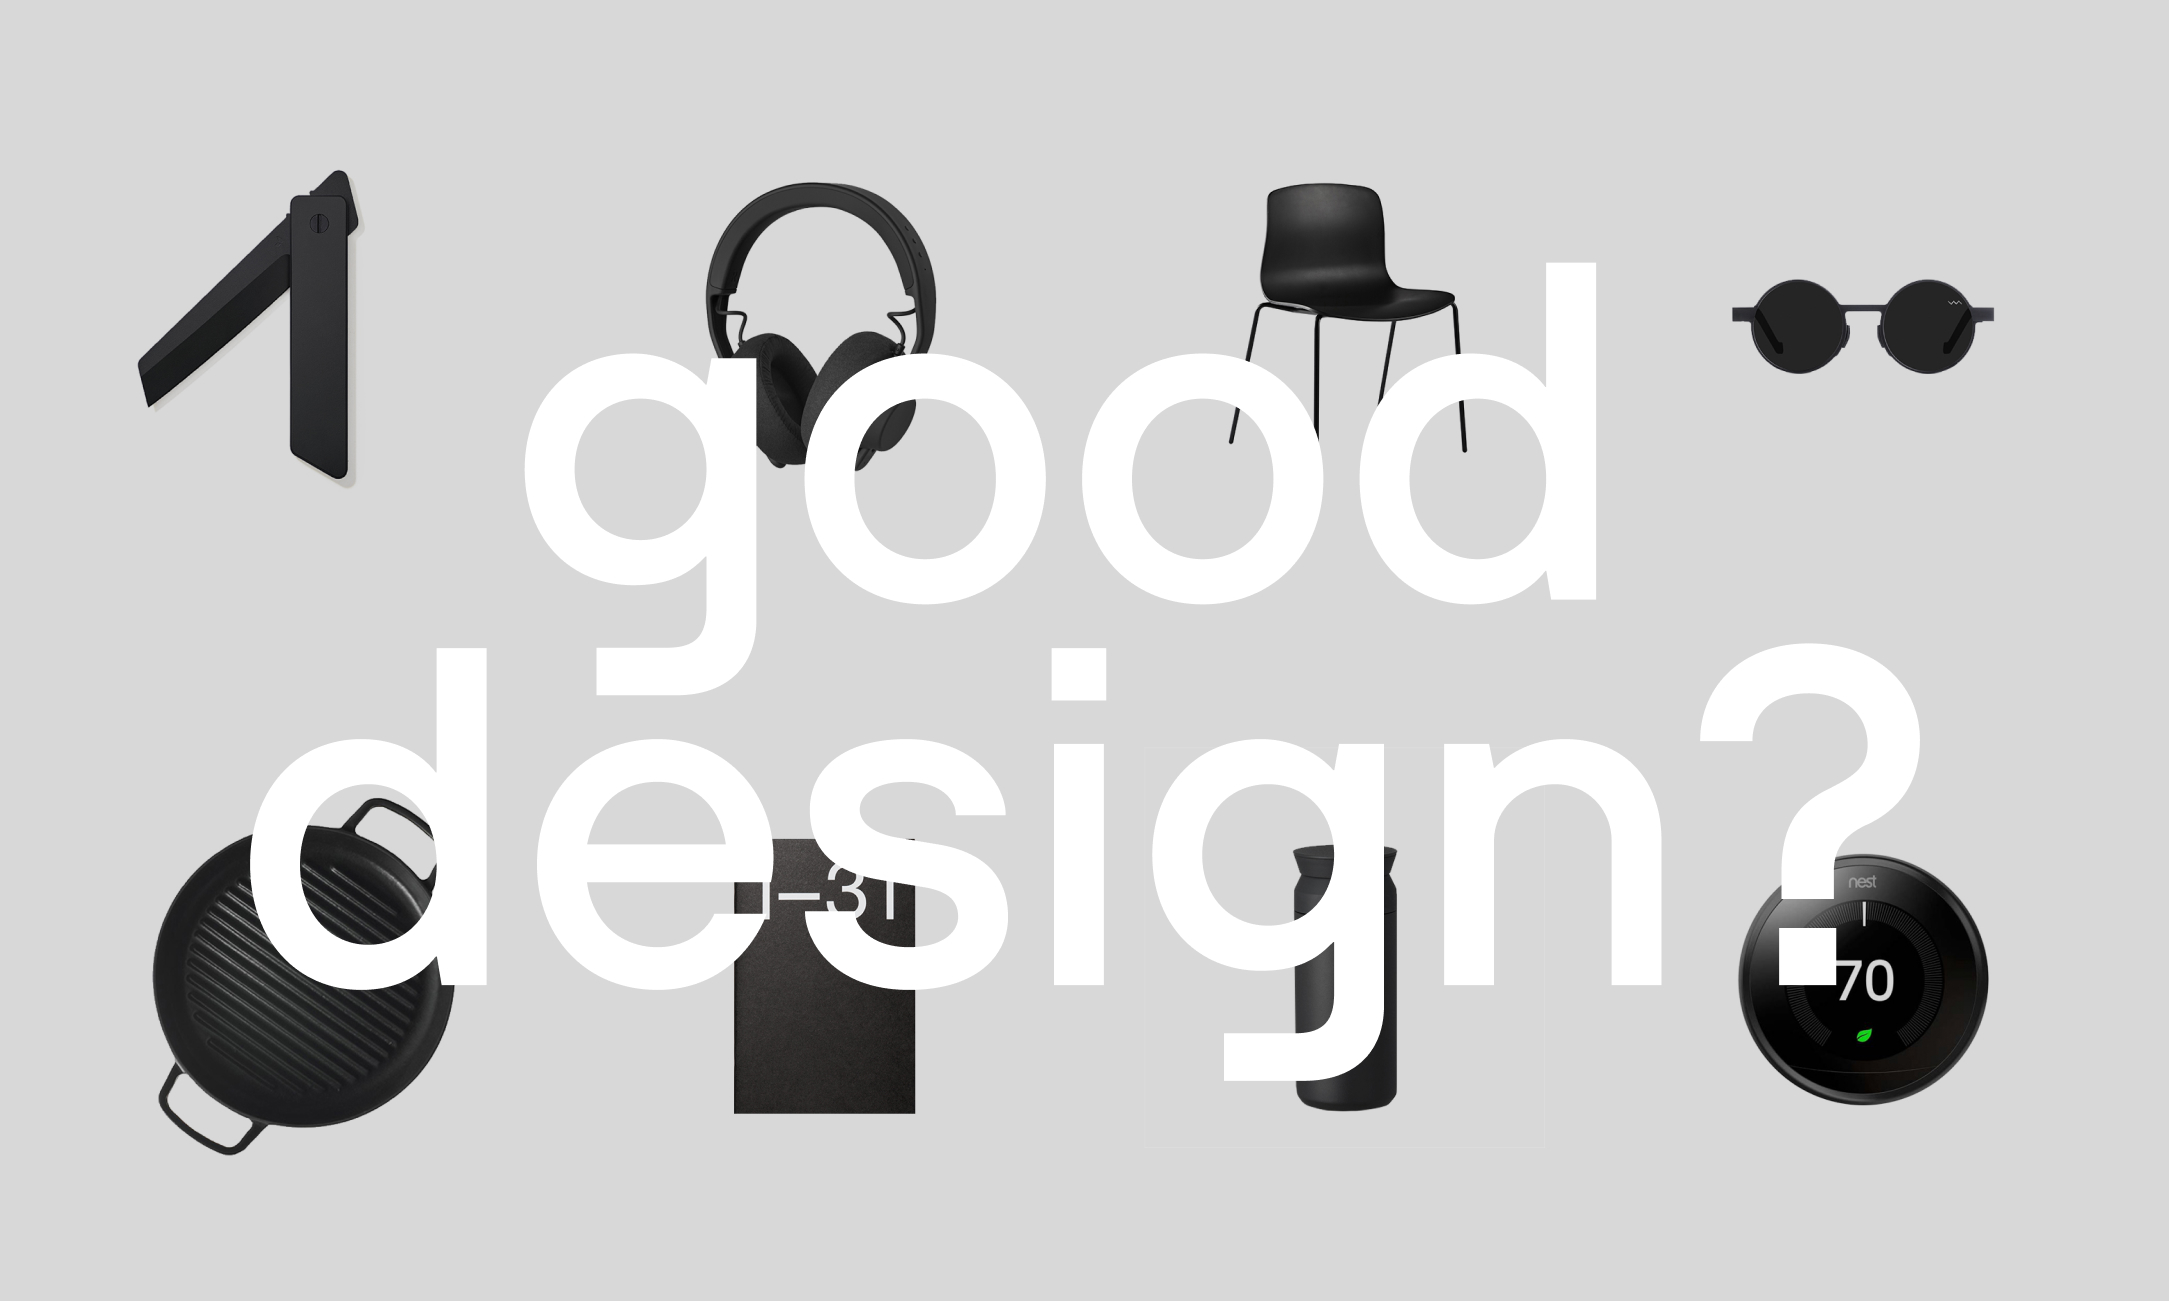 Good thoughts on good design